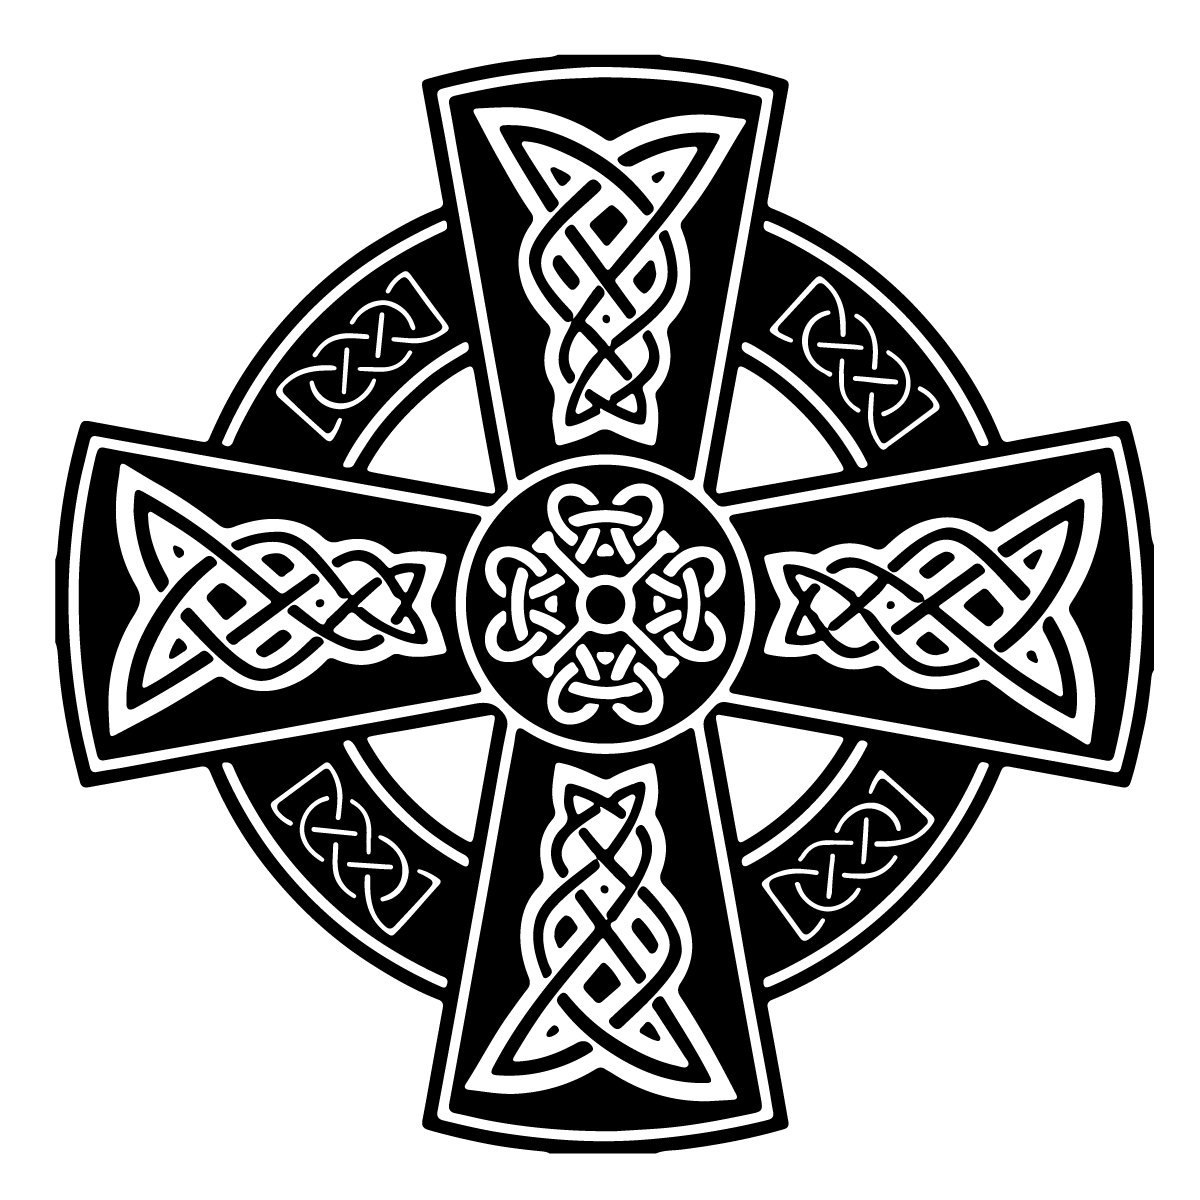 Celtic symbols and their meanings mythologian there are many theories regarding the origin of the symbol although none of them could be and possibly never will be confirmed biocorpaavc Image collections